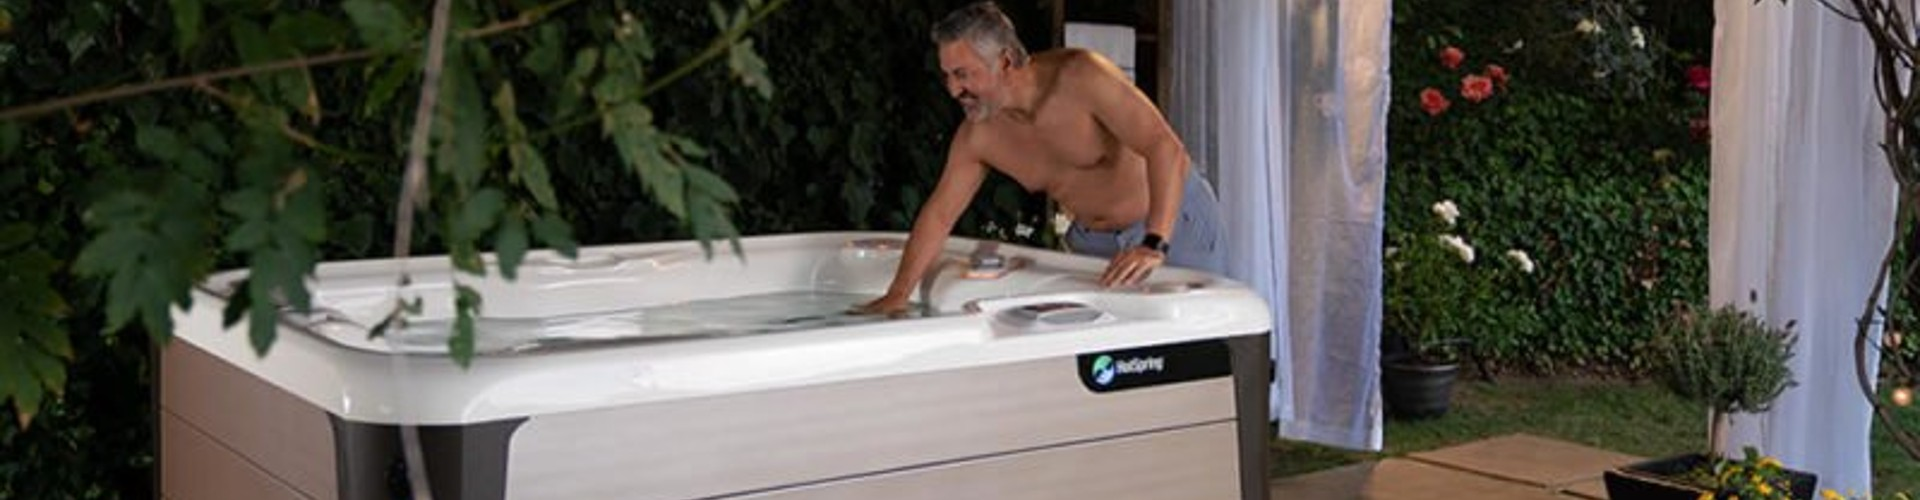 5 Reasons to Love a 2-Person or 3-Person Hot Tub